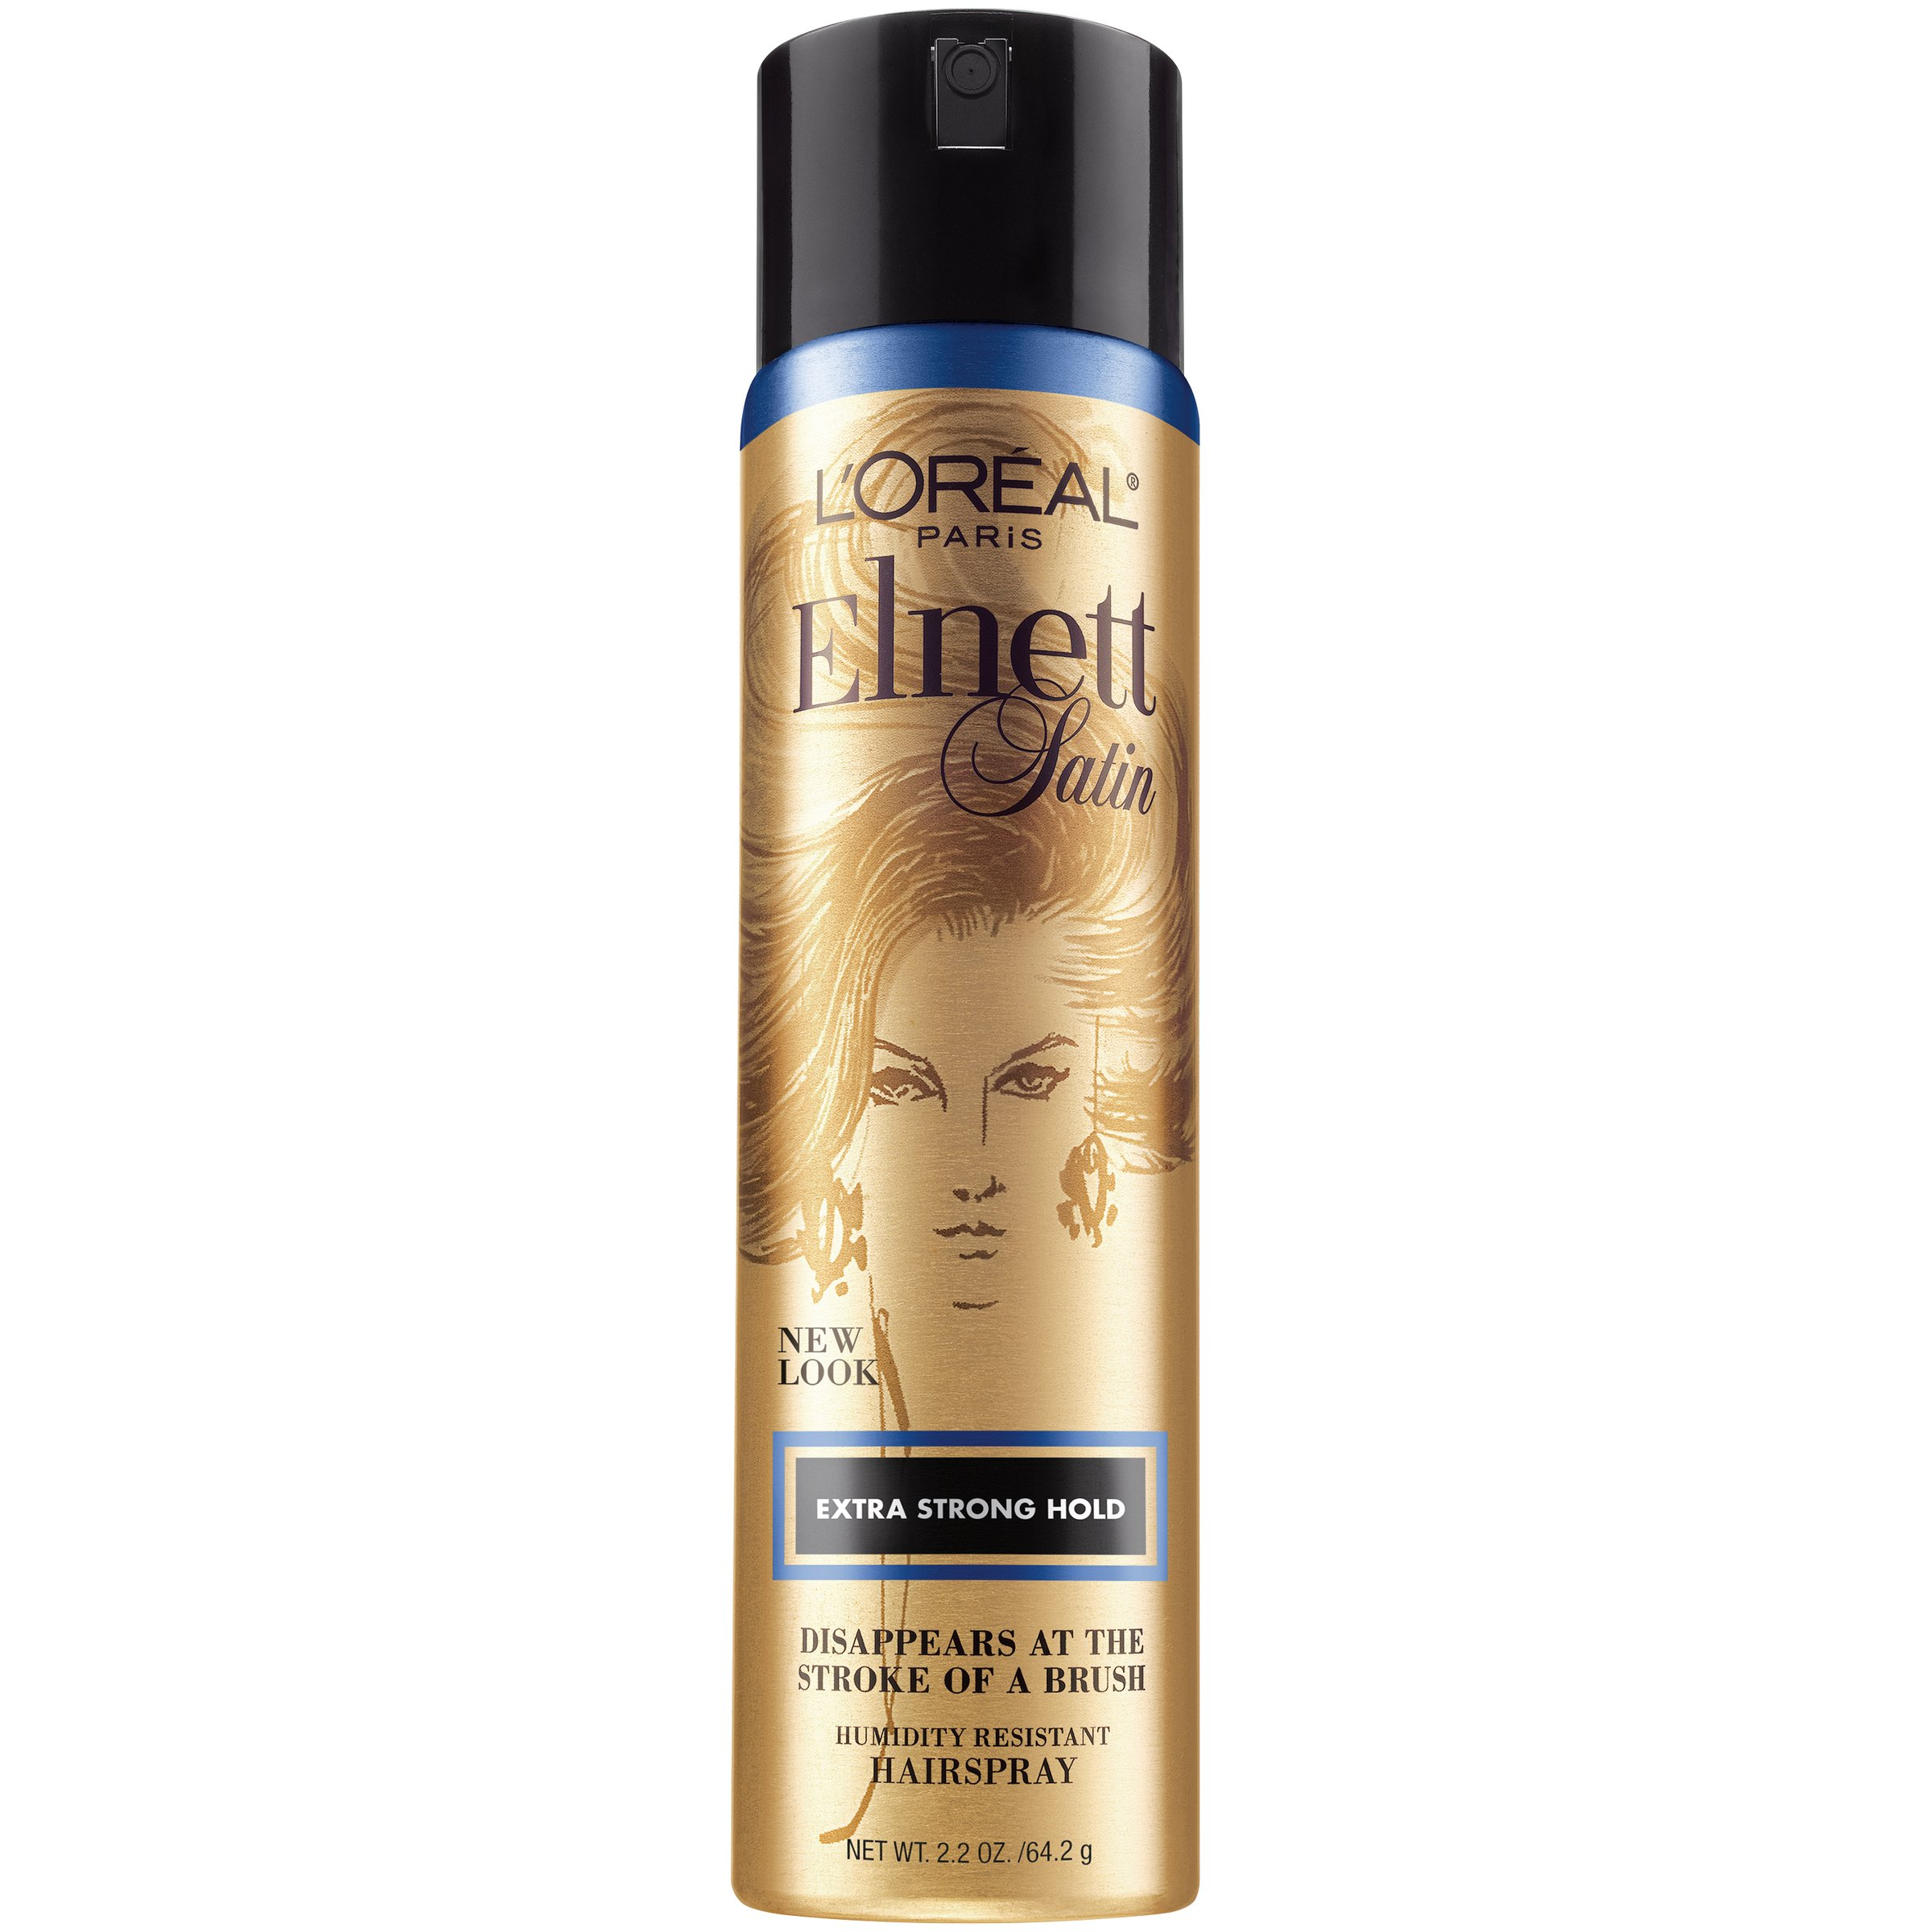 L'Oreal Paris Elnett Satin Hairspray, Extra Strong Hold, Travel Size, 2.2 oz. (Packaging May Vary)